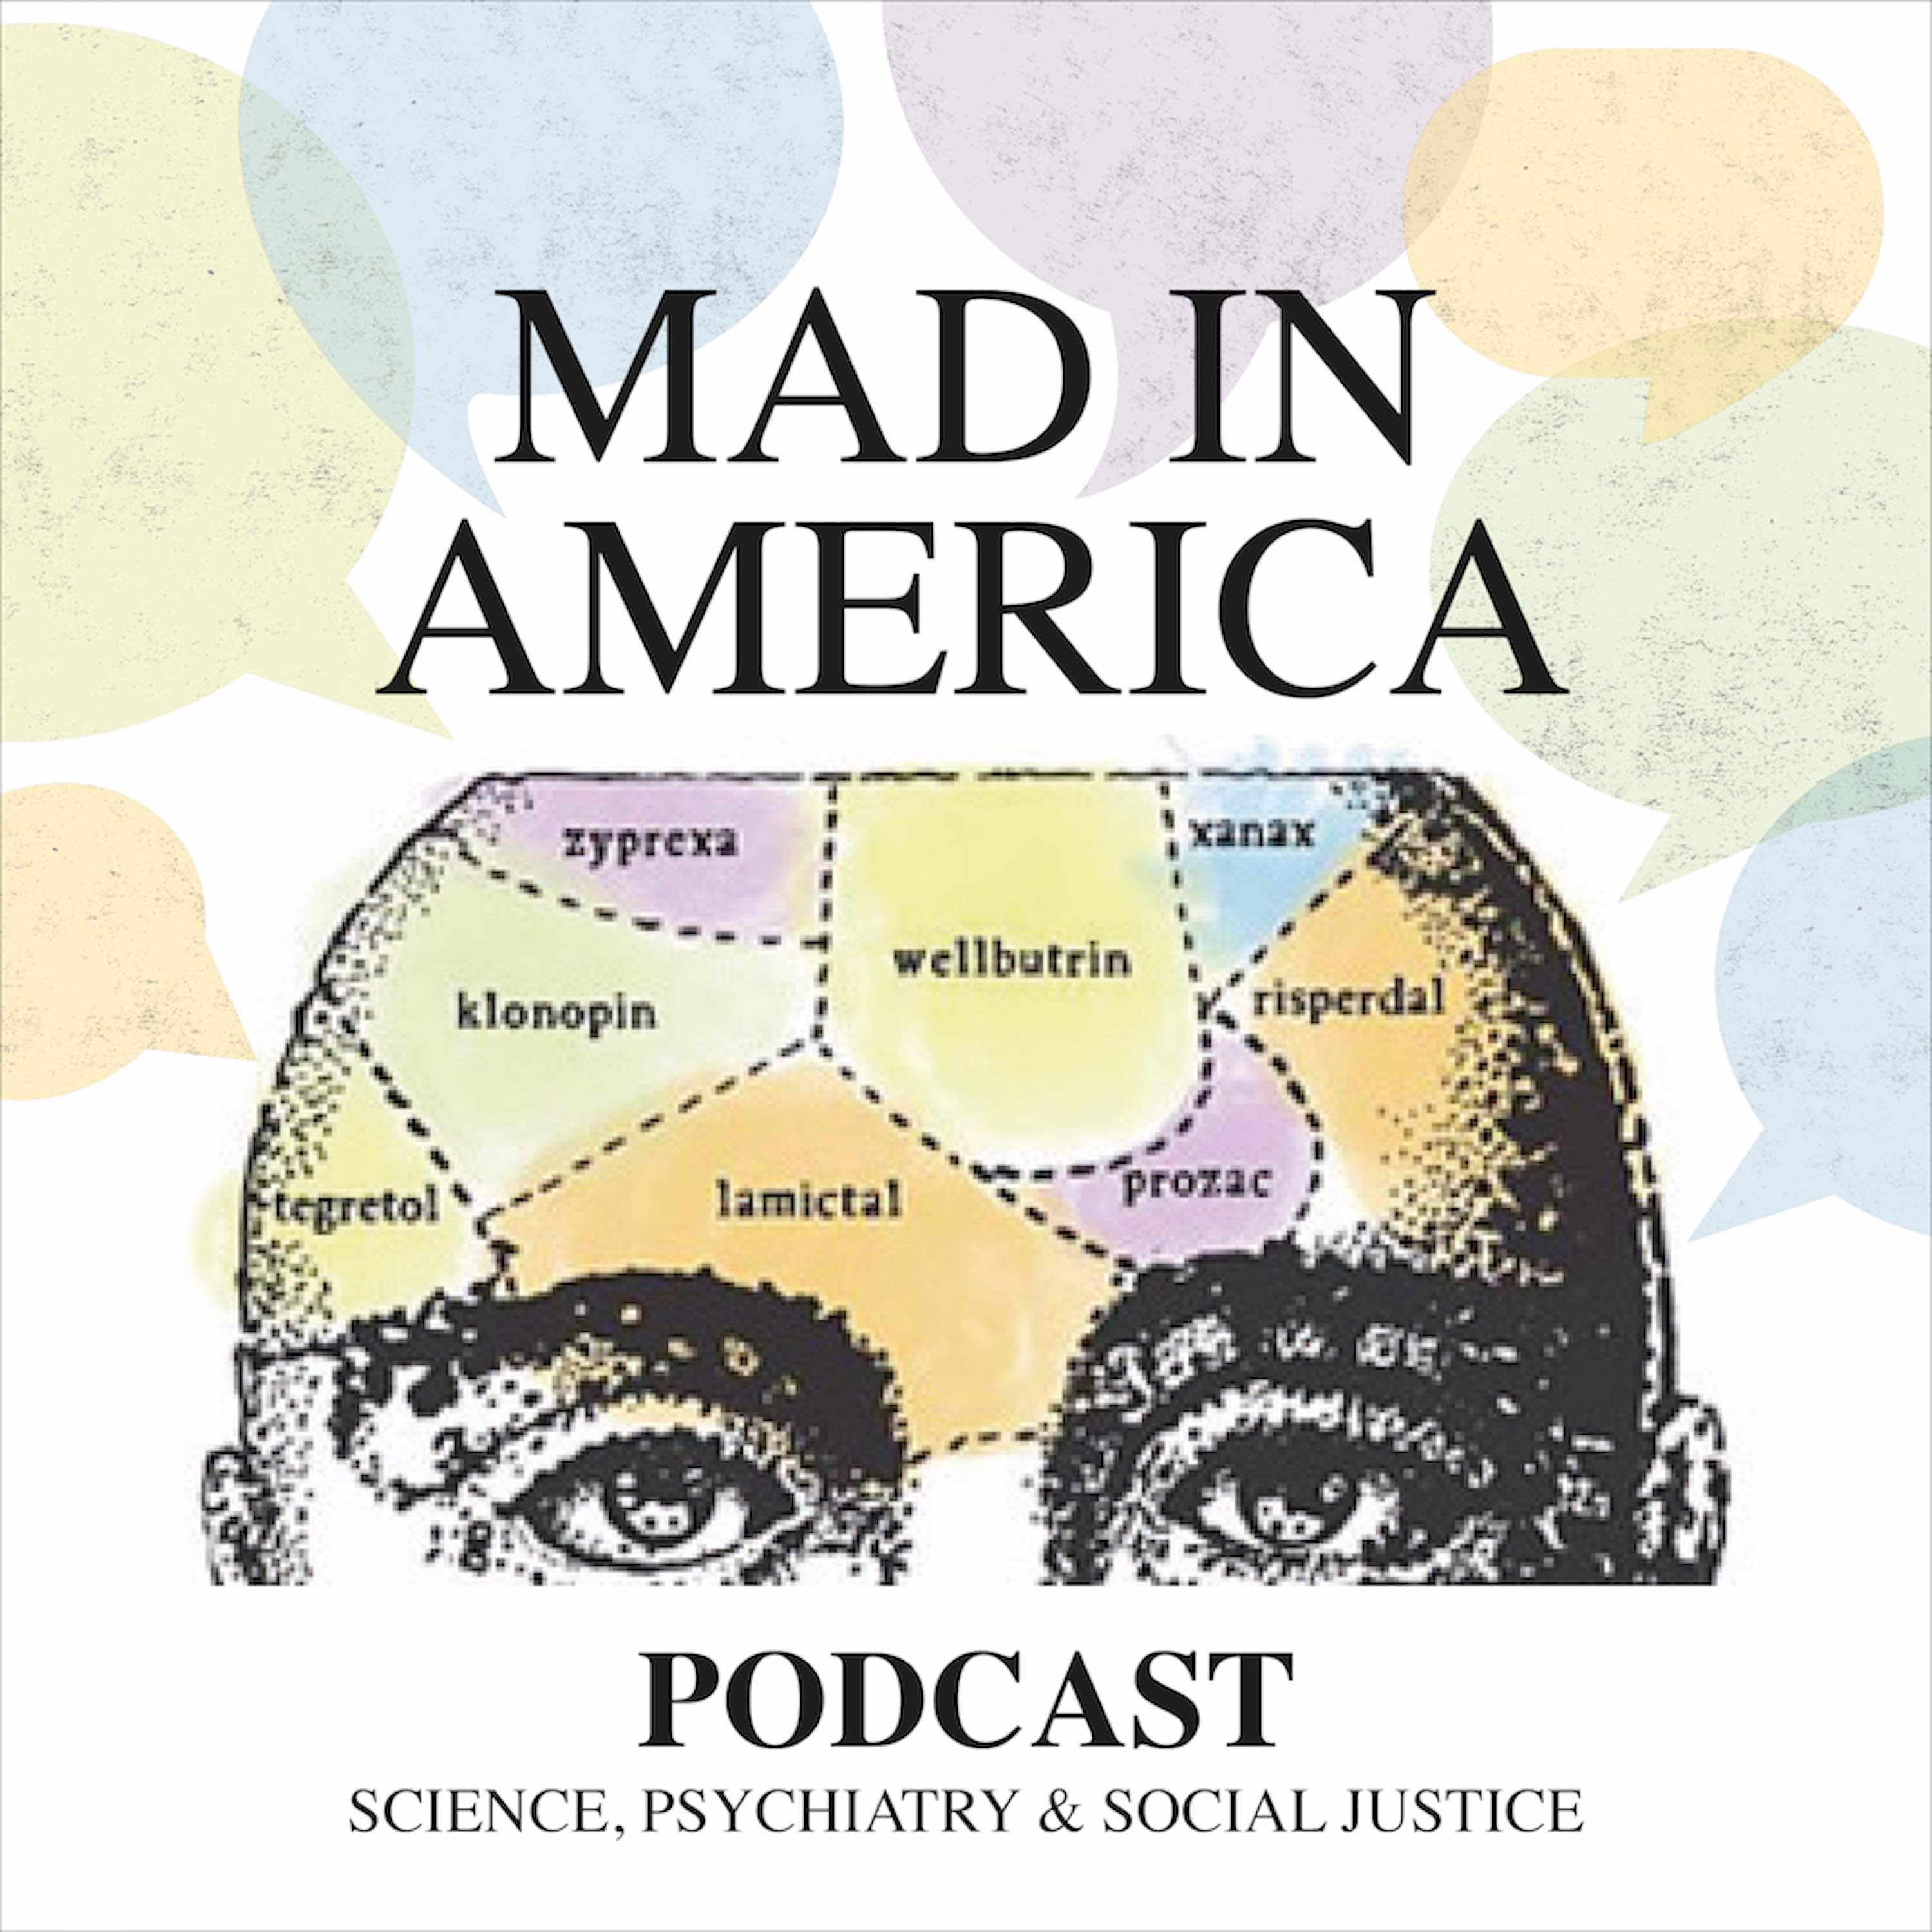 Mad in America: Rethinking Mental Health - David Cohen - Mad Science, Psychiatric Coercion and the Therapeutic State